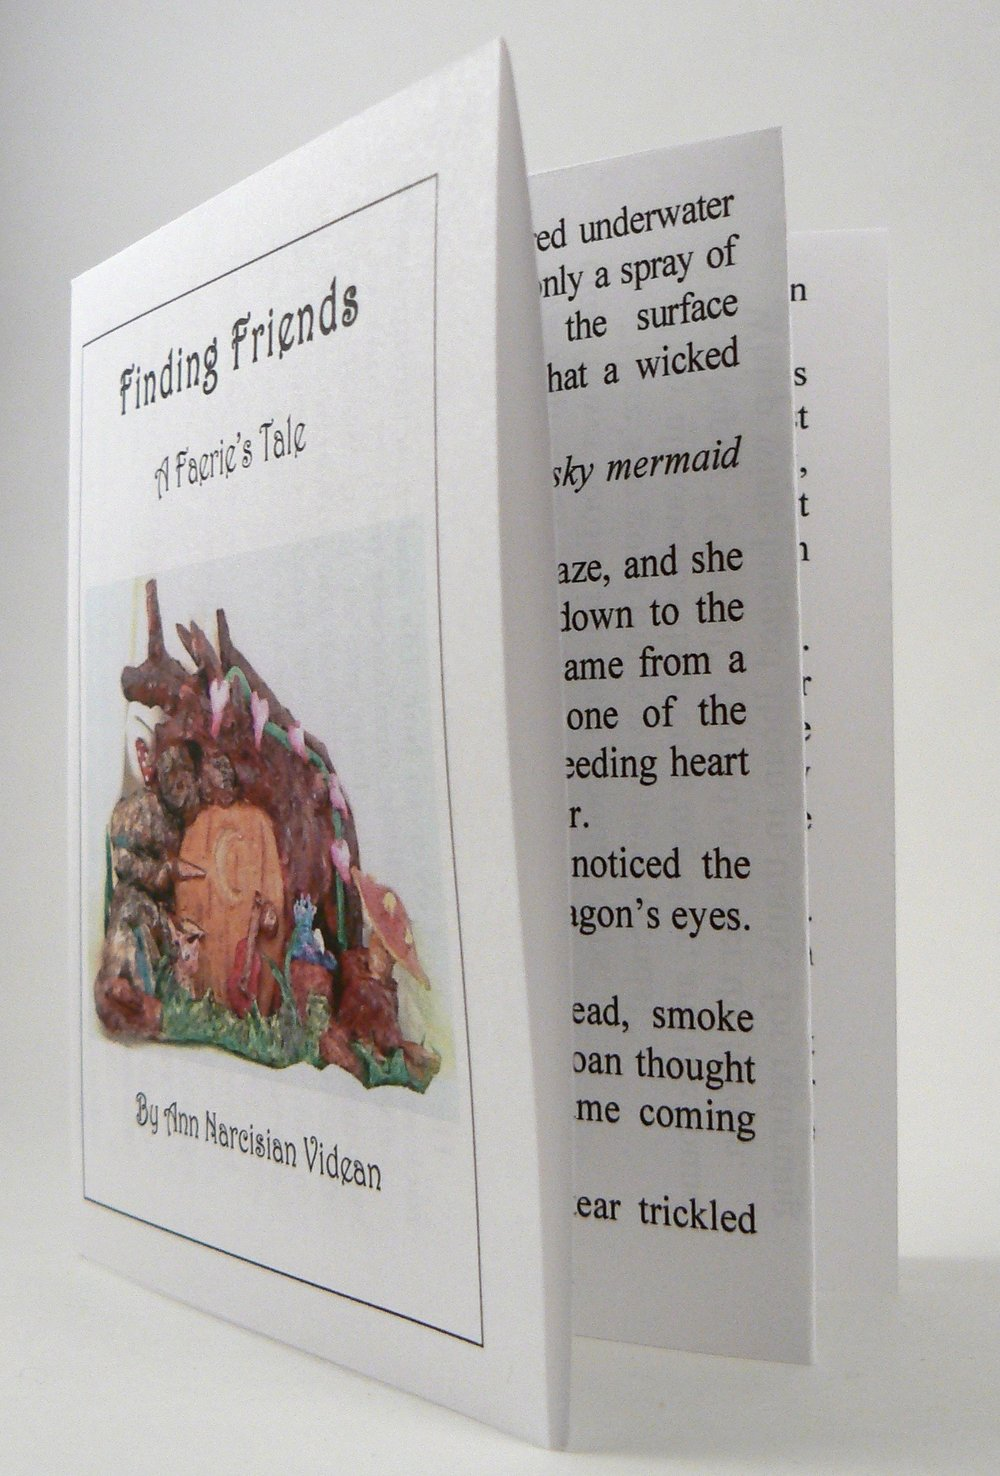 WhimsyC.booklet.Finding Friends.dcu.3.jpg